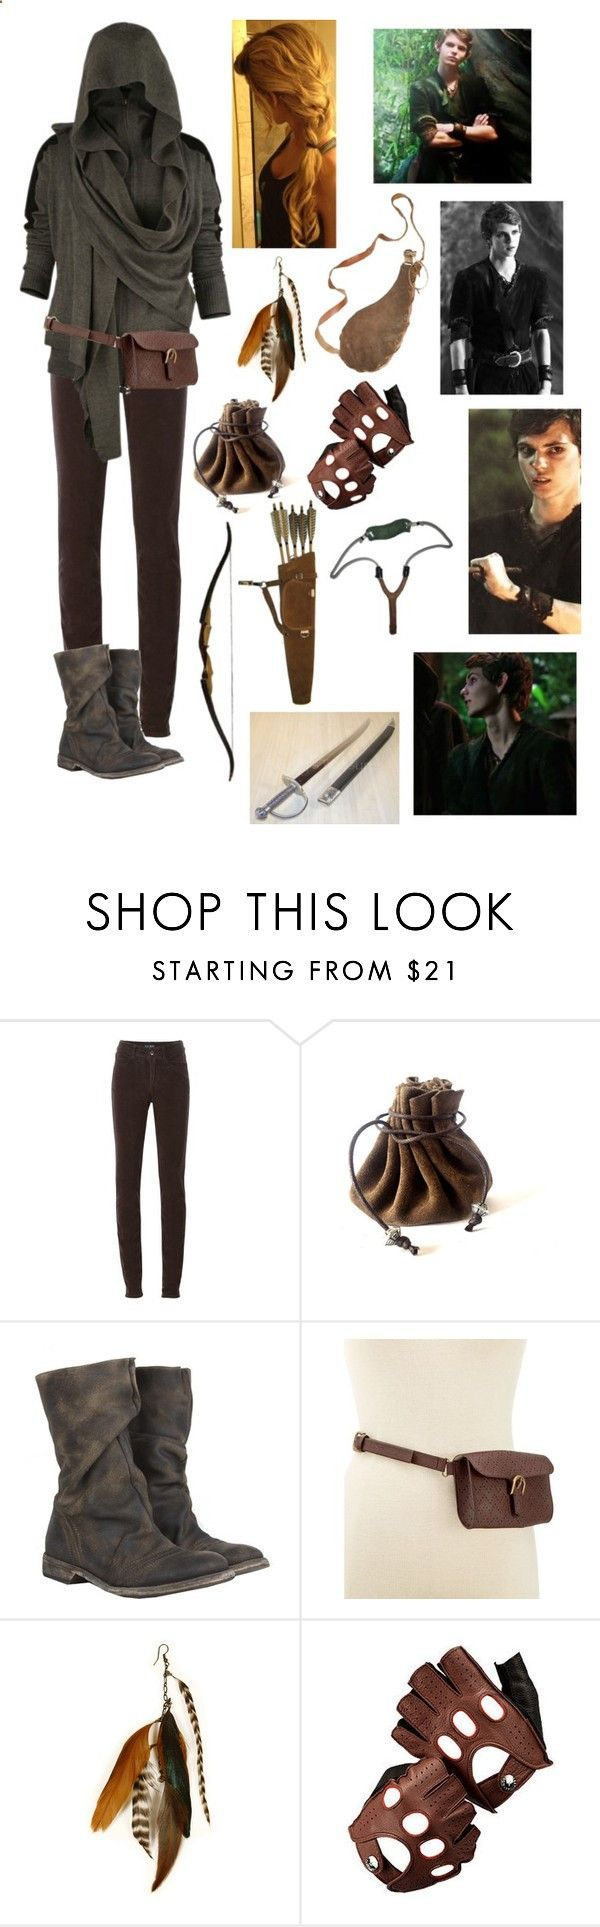 Lost Girl - Peter Pan by blackwidow321 ❤ liked on Polyvore featuring Armani Jeans, AllSaints, Style  Co., Gilded Lily Goods, Aspinal of London, Once Upon a Time, womens clothing, women, female and woman